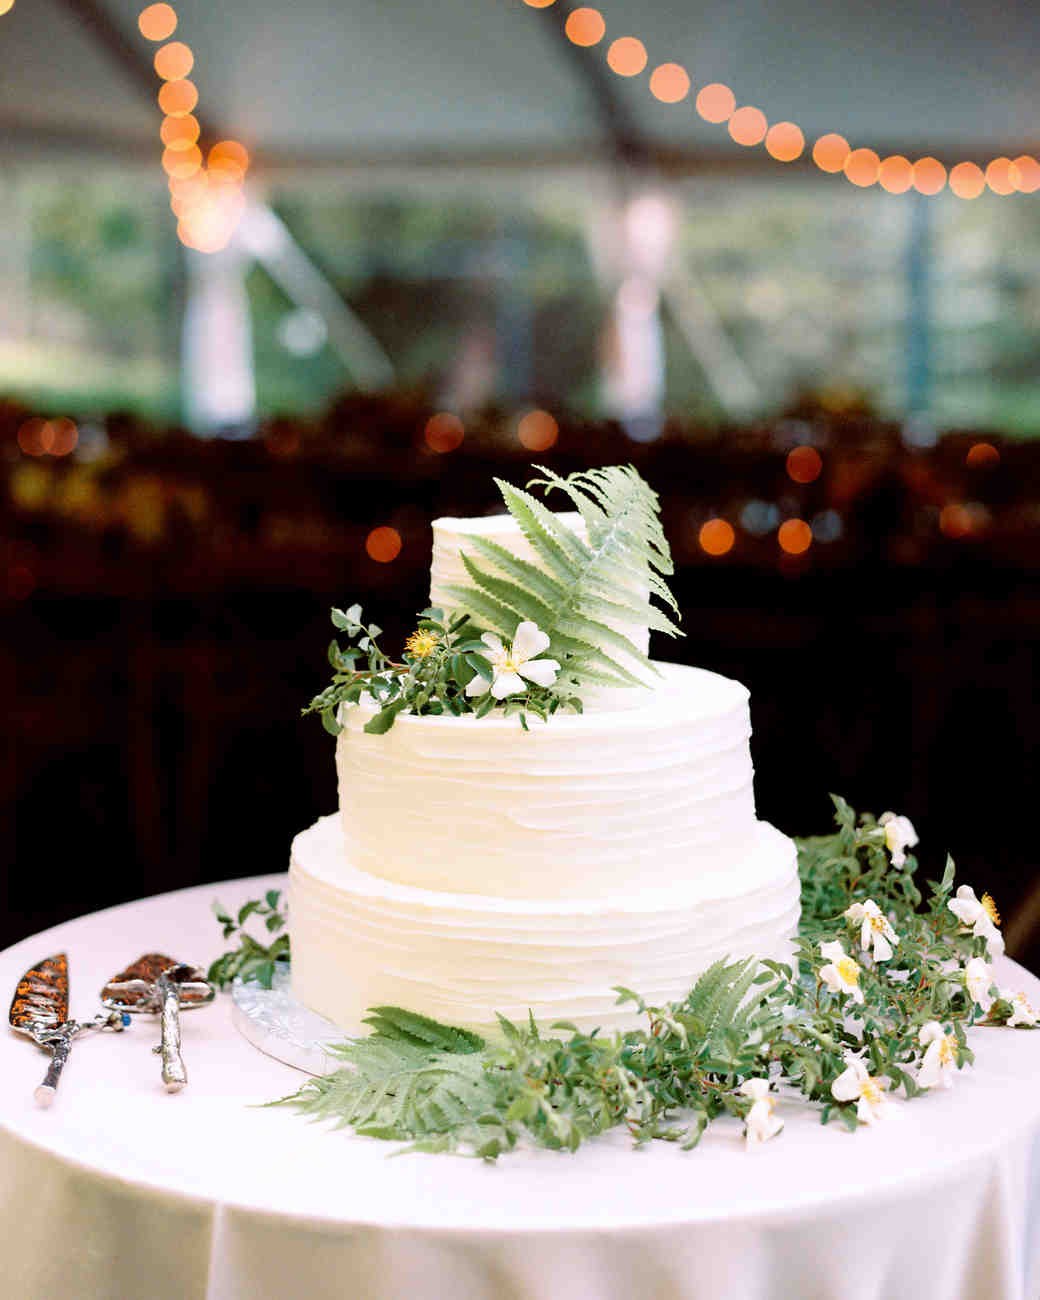 32 Amazing Wedding Cakes You Have To See To Believe: Wedding Cakes & Toppers